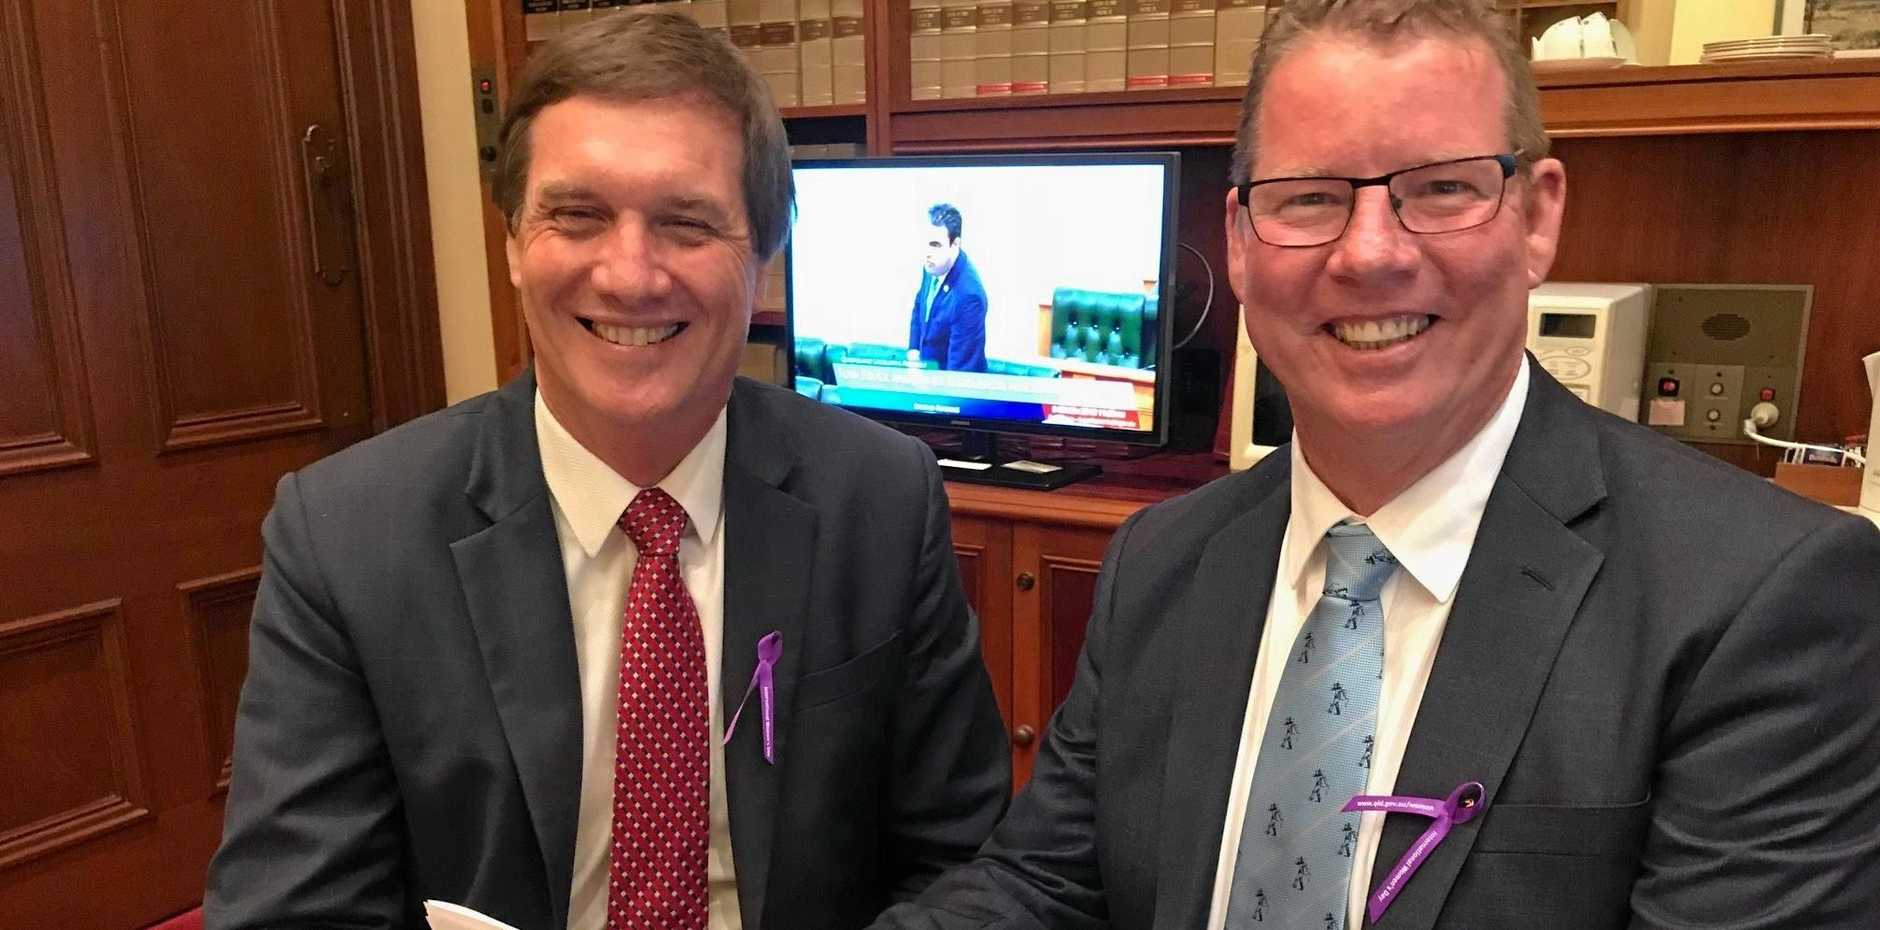 SPEECH REVIEW: Minister for Natural Resources, Mines and Energy Dr Anthony Lynham helps put the finishing touches on Rockhampton MP Barry O'Rourke's maiden speech to parliament.